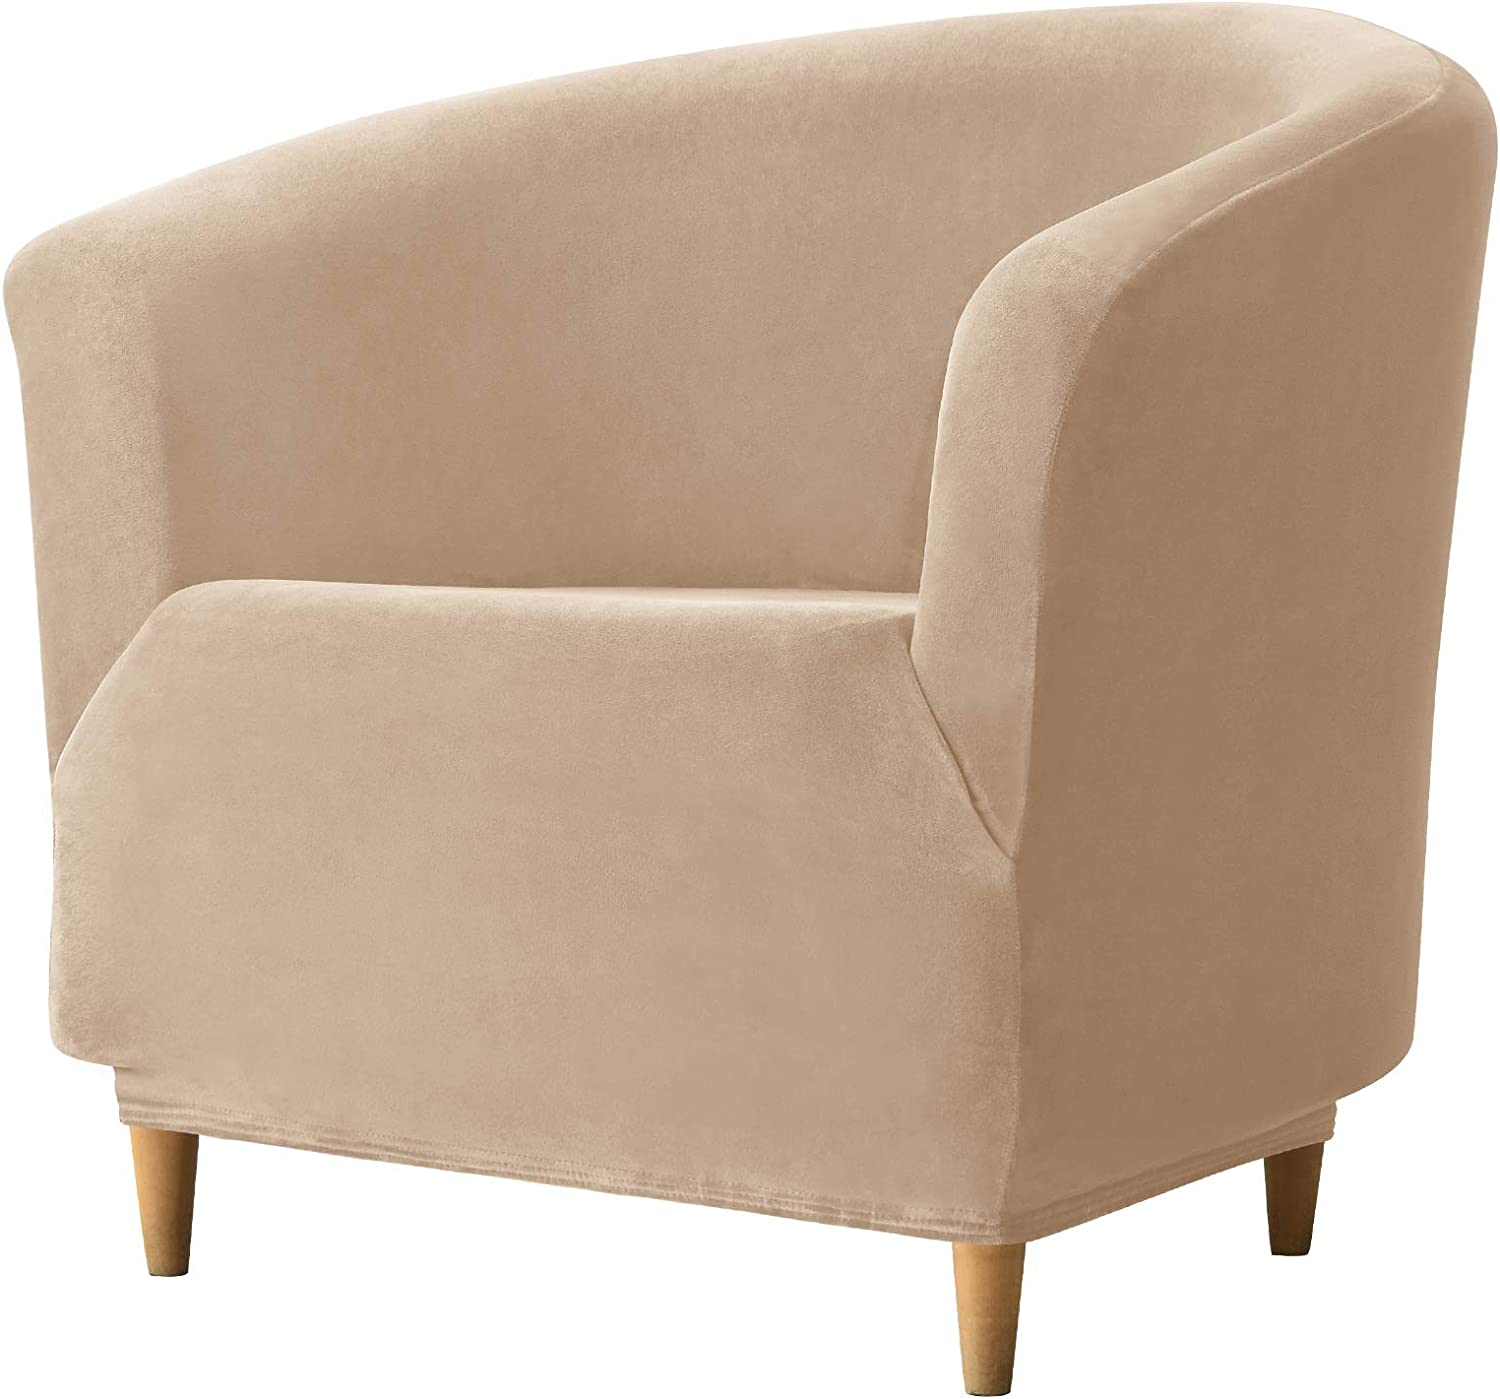 REECOTEX Velvet Club Chair Slipcover, Soft Stretch Tub Chair Cover for Living Room and Bedroom, Washable and Removable Armchair Protector, Furniture Protector for Home Decor,Beige